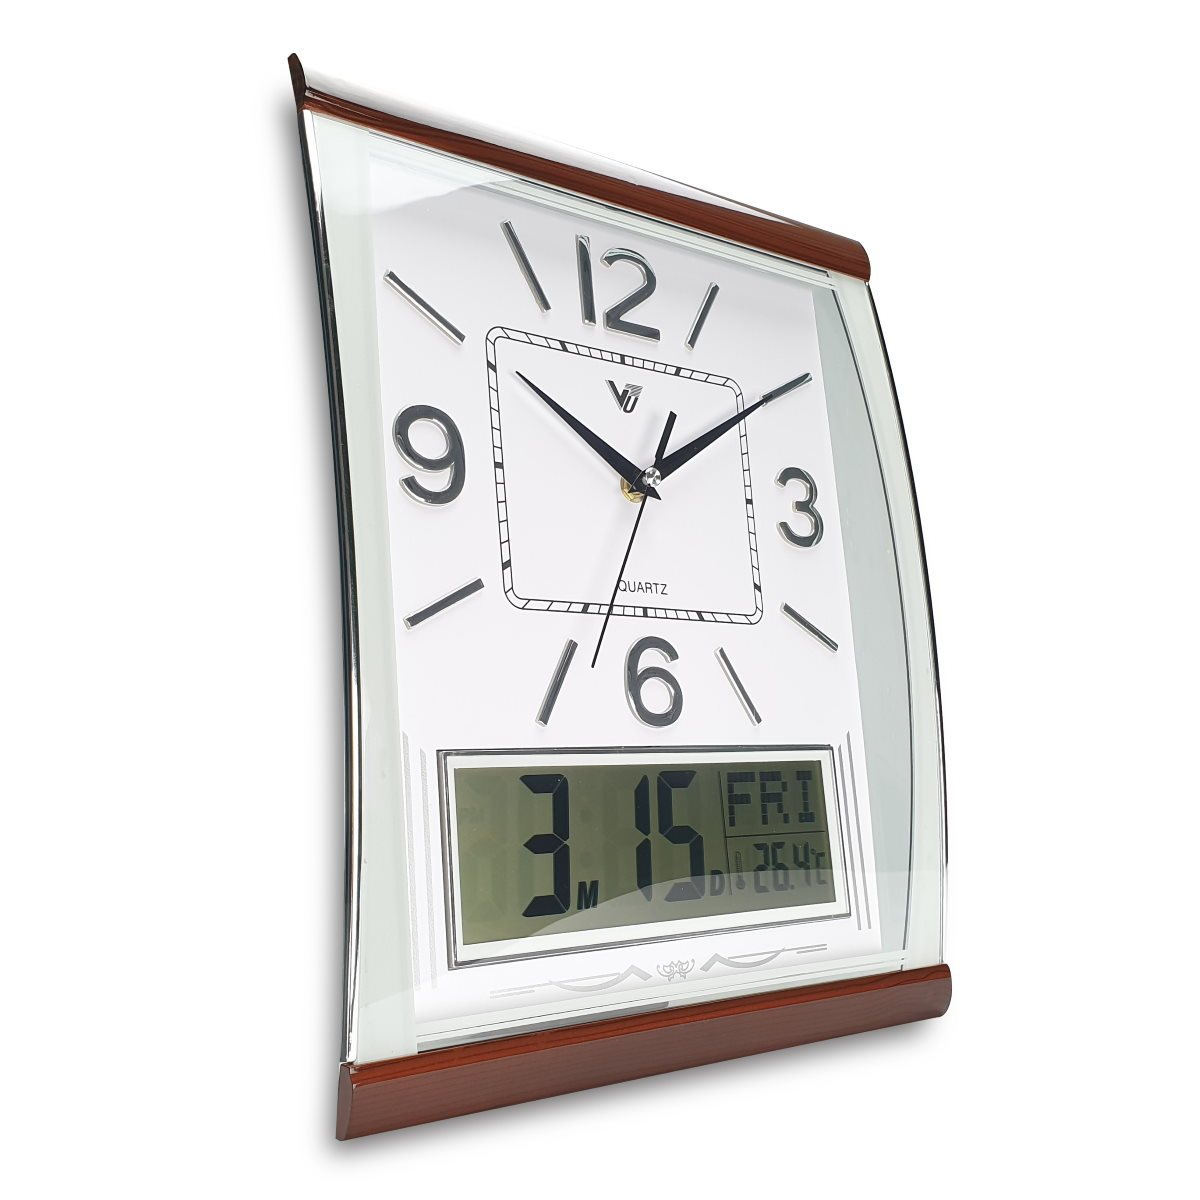 Victory Marlee Analogue with Digital Calendar Temp Wall Clock White 37cm CBL 1053 WHI 1